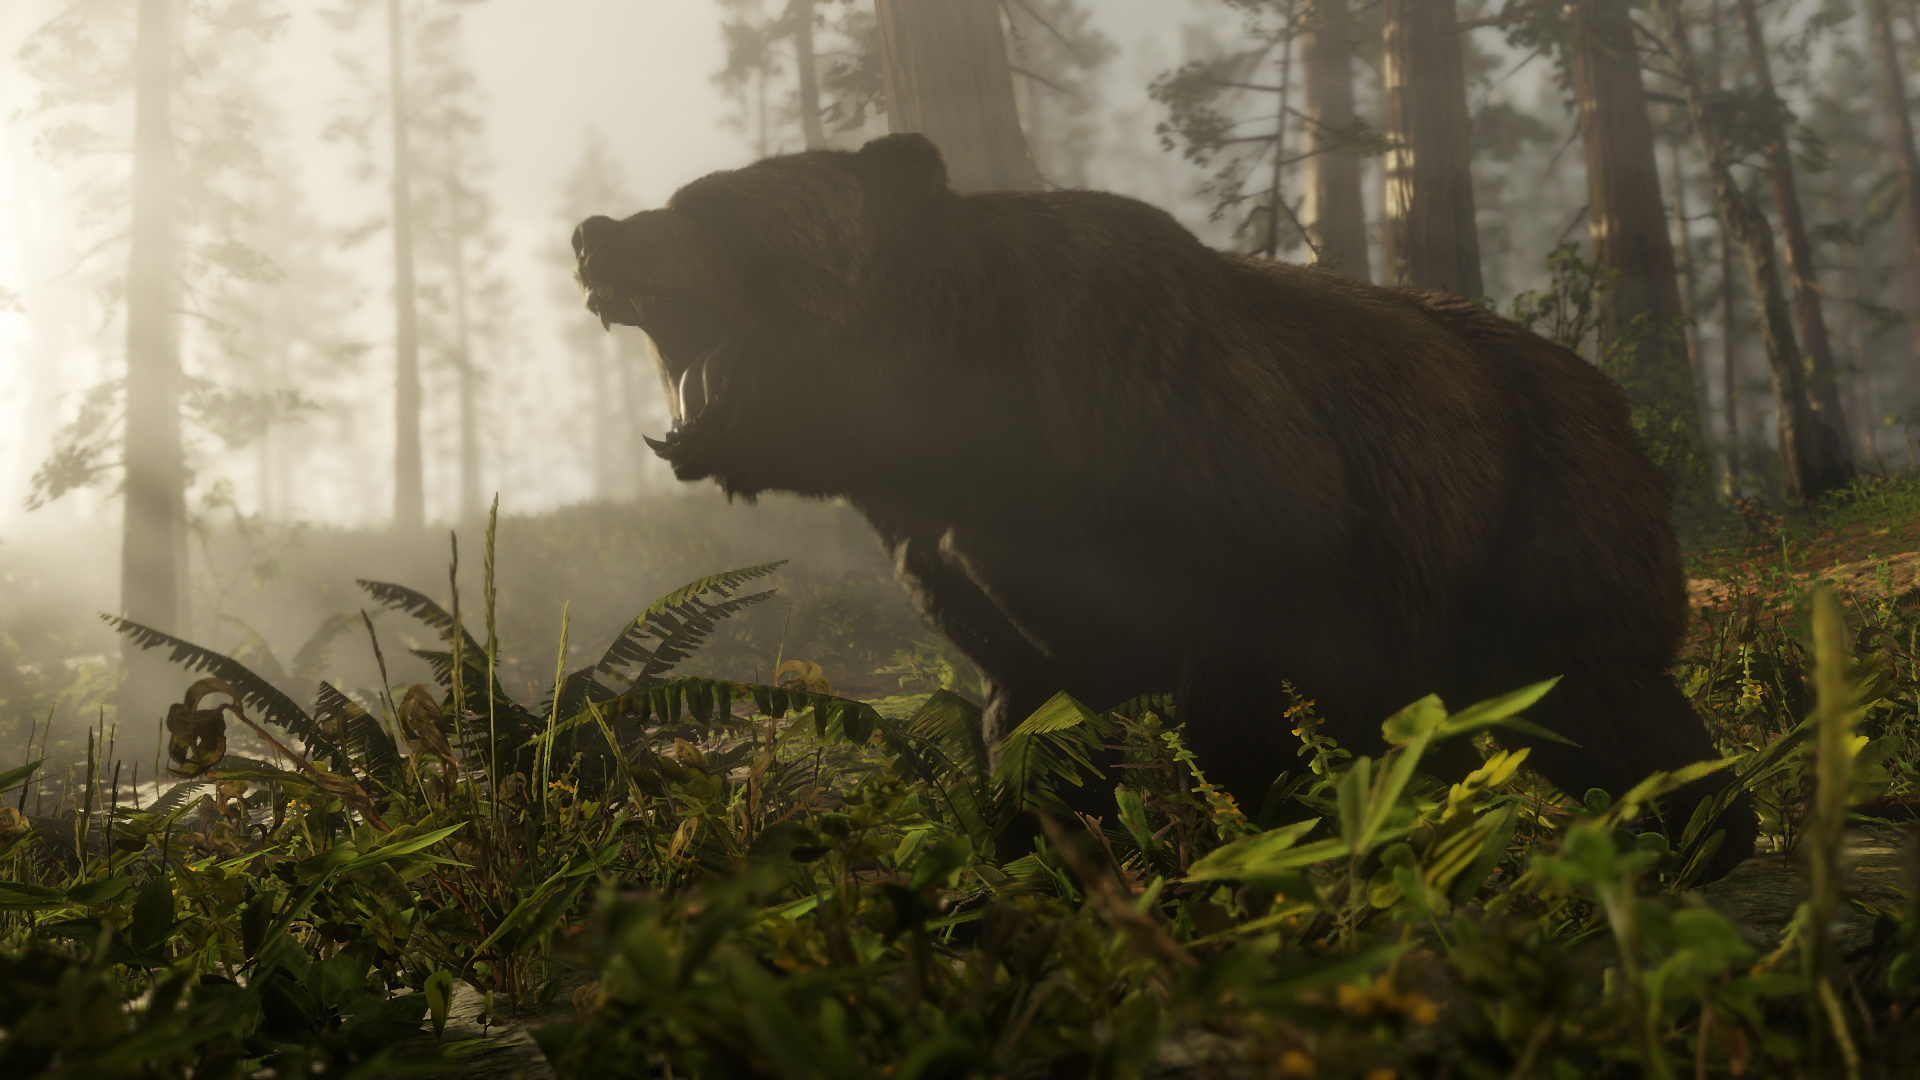 Red Dead Redemption 2: How to Acquire the Legendary Bear Hunter